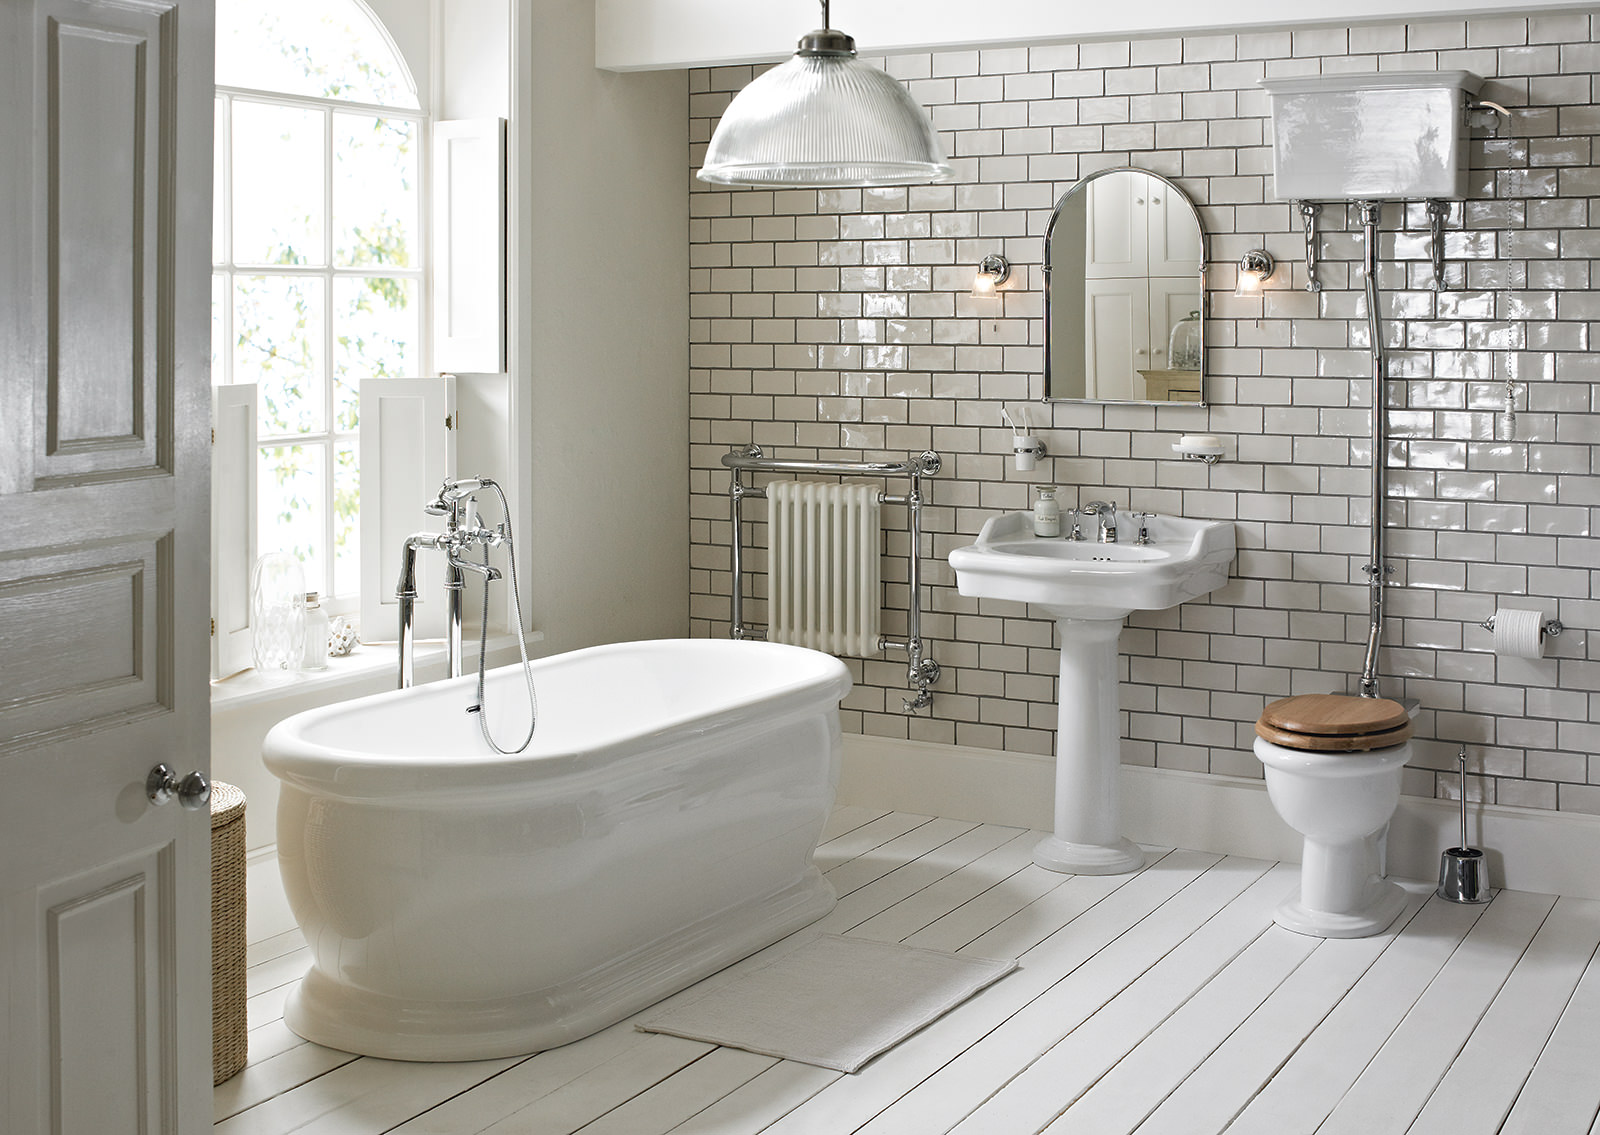 Heritage victoria high level wc and cistern with flush pack for Bathroom styles